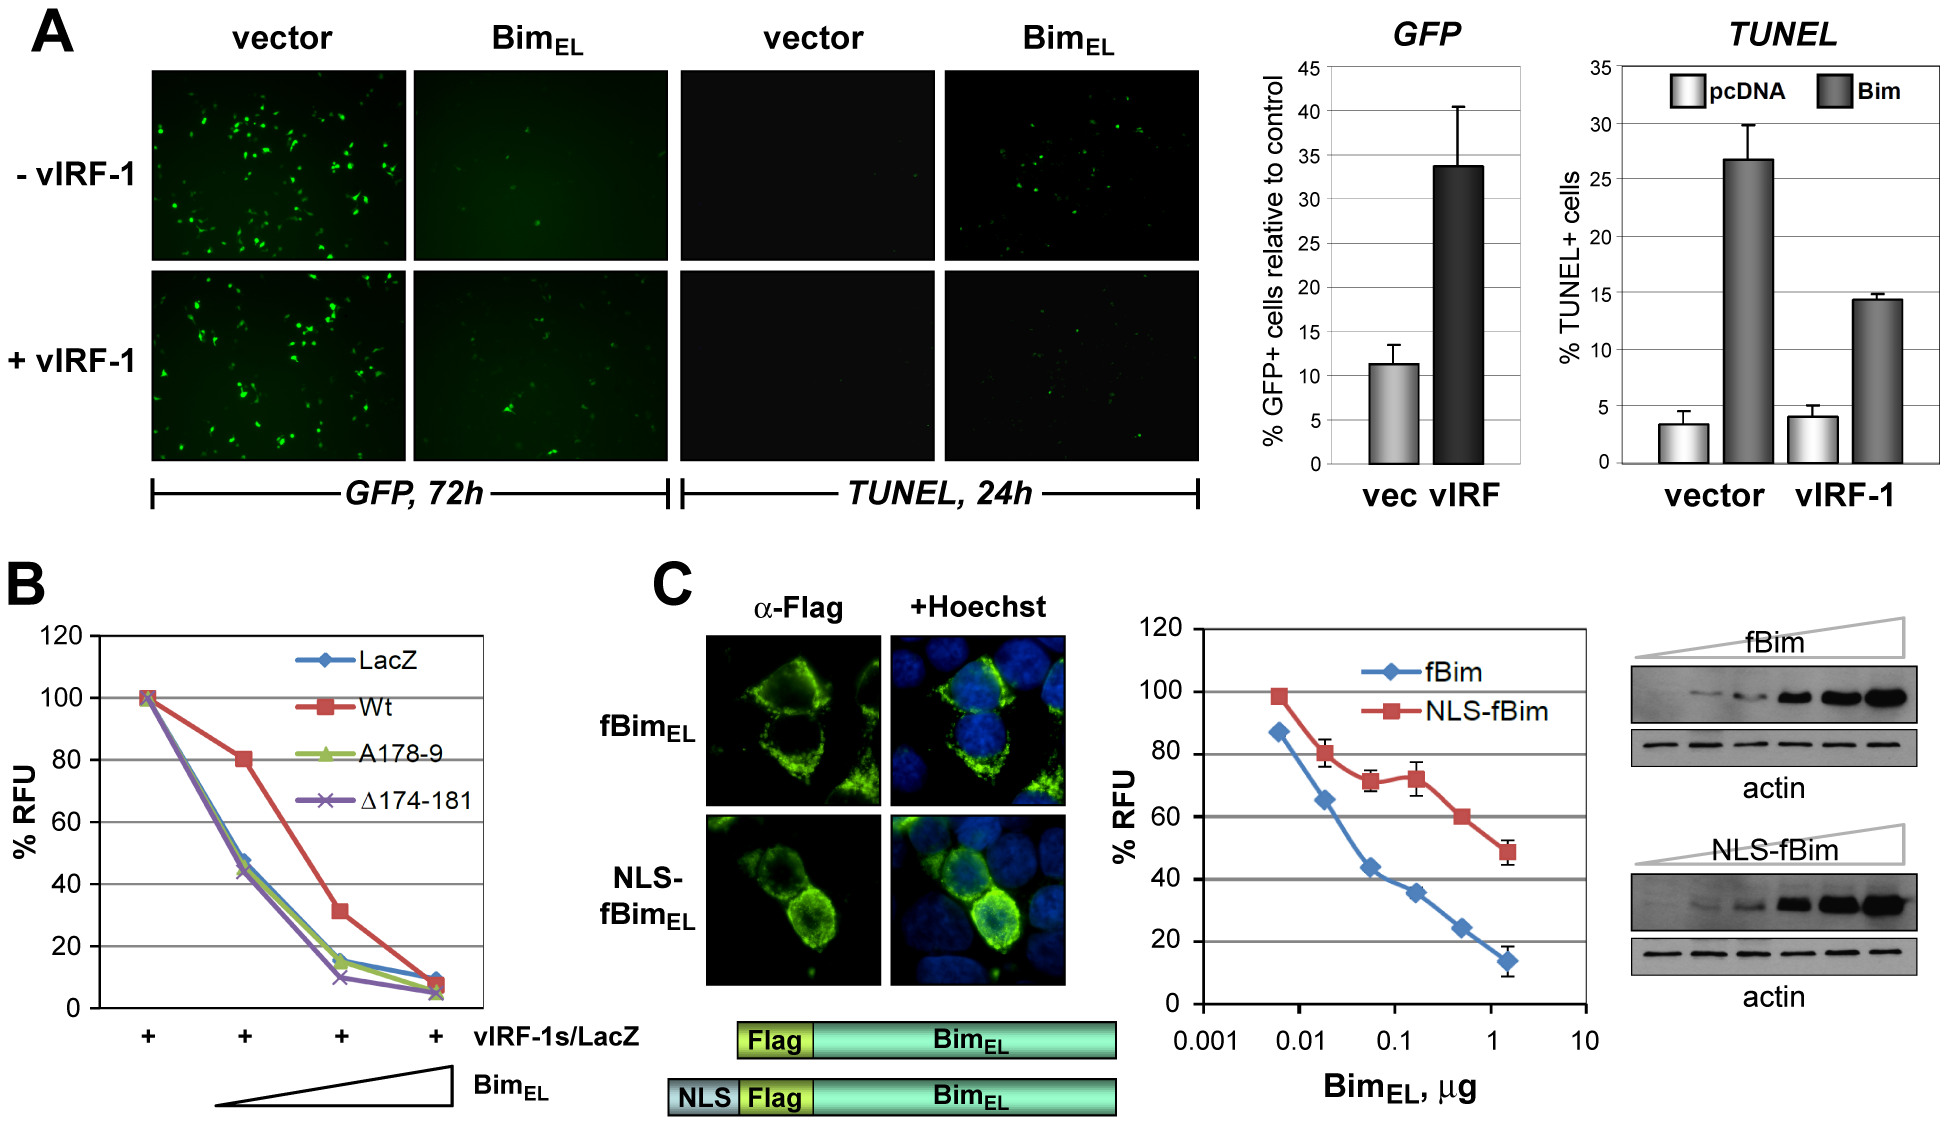 Functional significance of vIRF-1:Bim binding and Bim nuclear translocation.